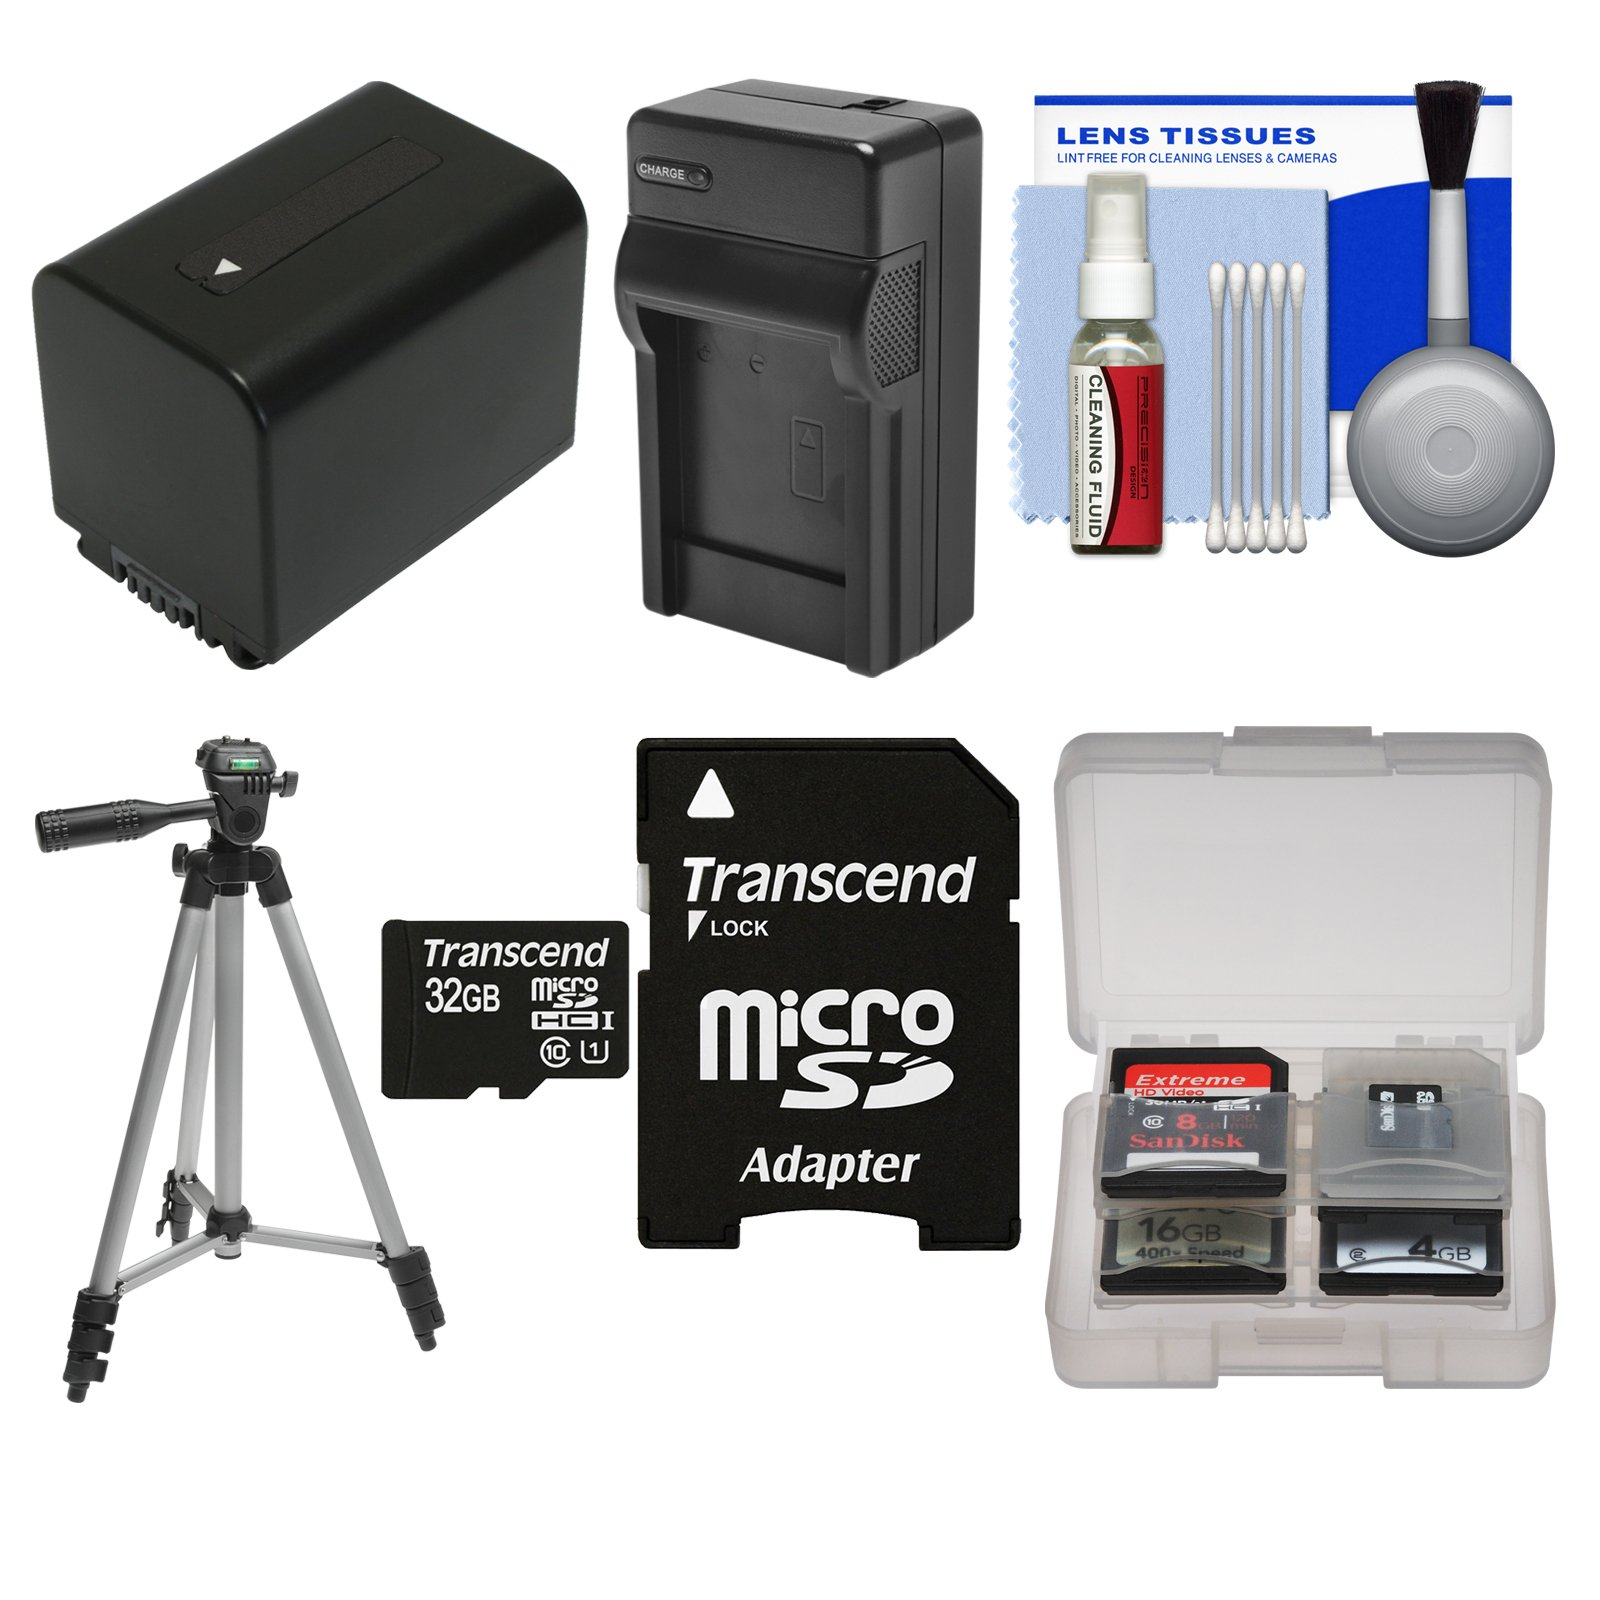 Essentials Bundle for Sony Handycam HDR-CX455, CX675, PJ670, PJ810, AX33, AX53, AX100, AX700 Camcorders with 32GB Card + NP-FV70 Battery & Charger + Tripod Kit